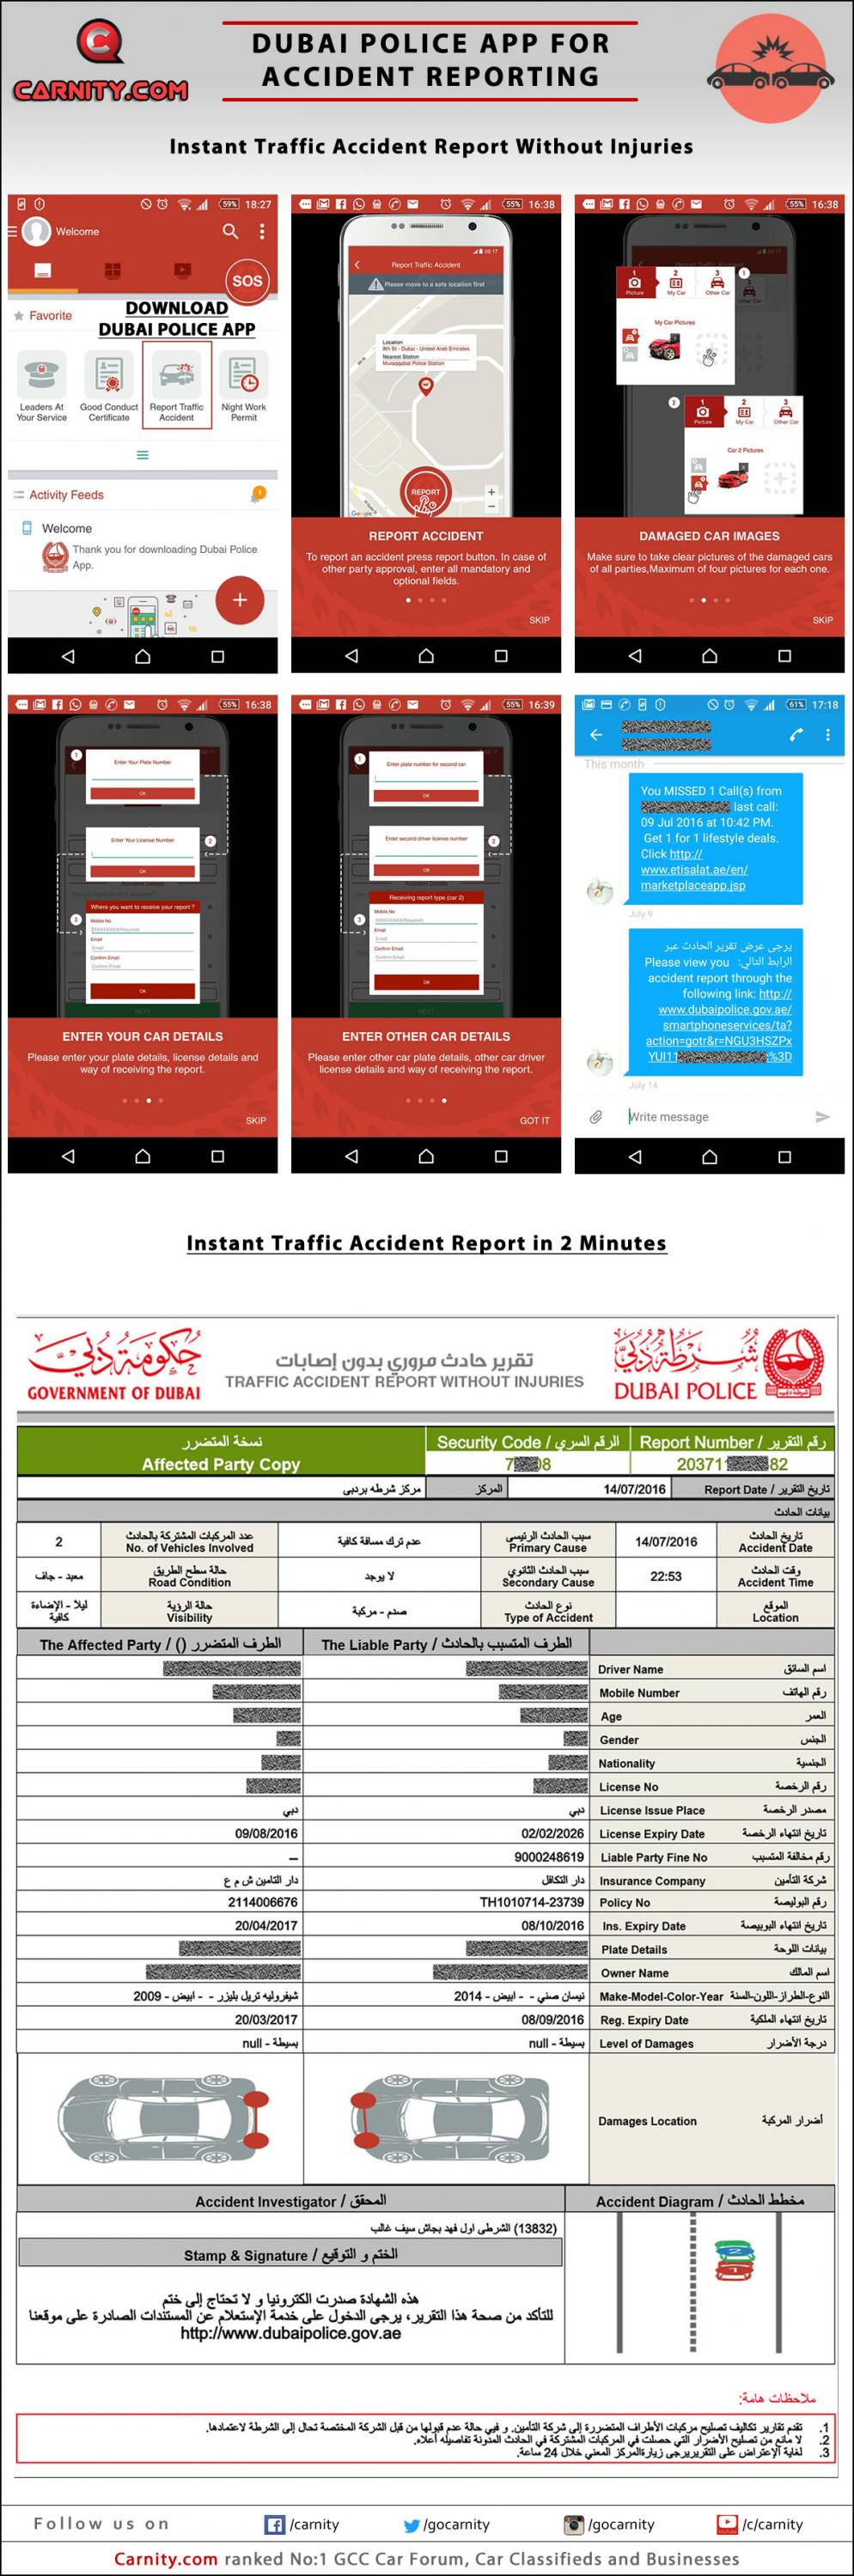 Dubai Police Accident Report.jpg